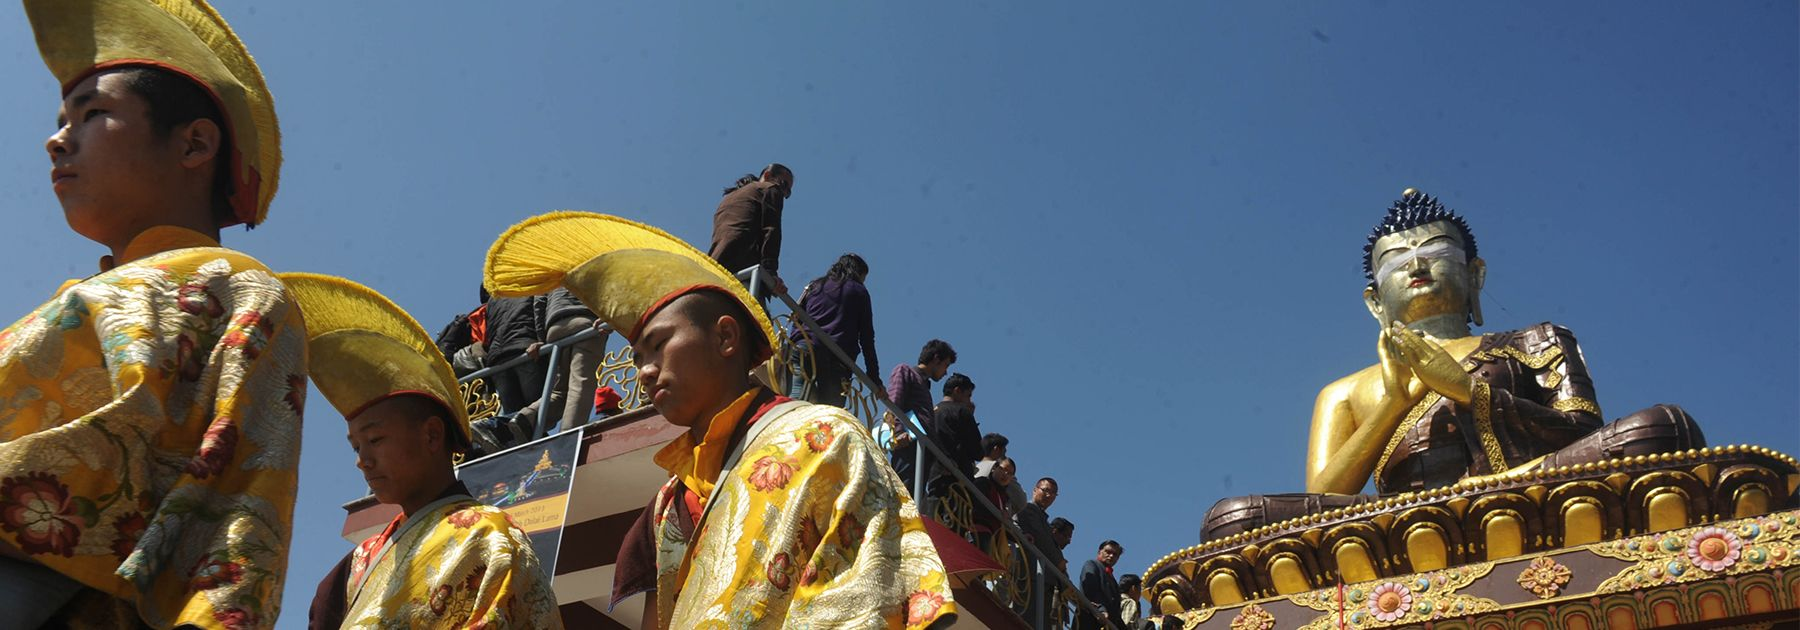 Buddhist monks walk at the 130 foot Lord Buddha statue during the Dzung ceremony as Buddha Park is unveiled on February 25, 2013. (DIPTENDU DUTTA/AFP/Getty Images)